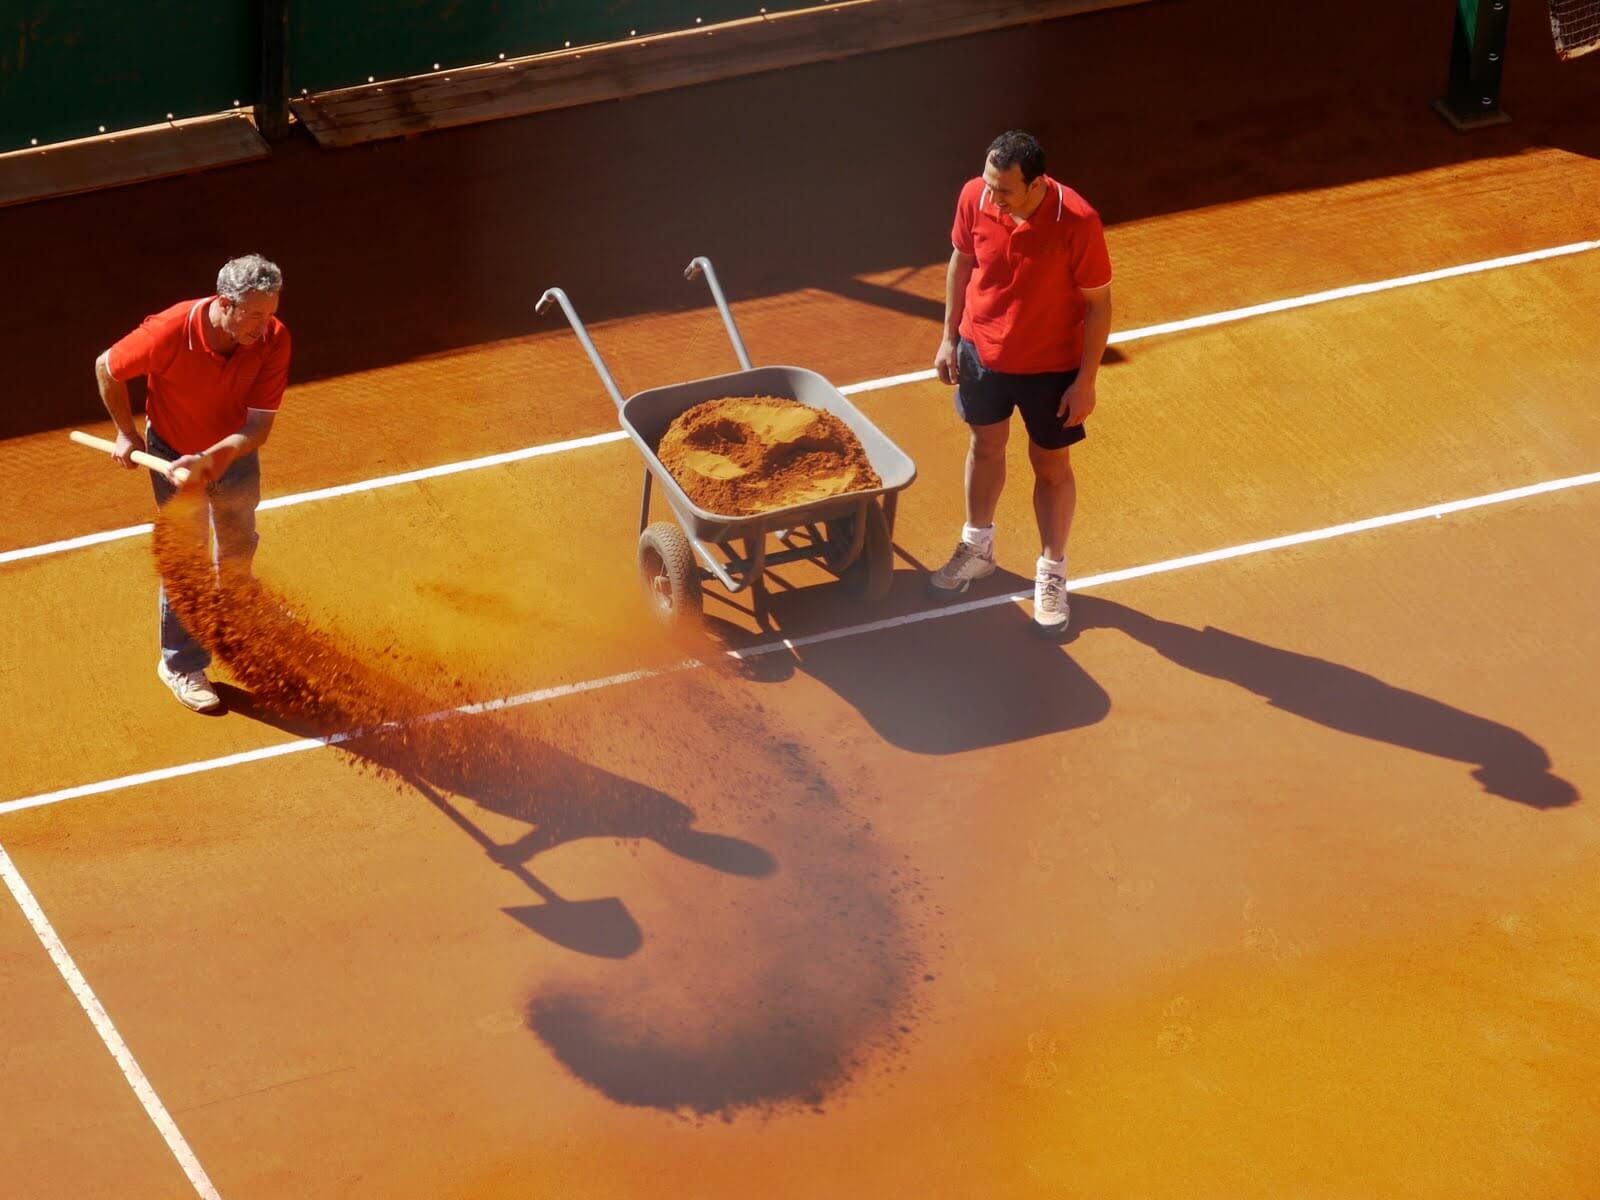 Monte-Carlo Masters preparing the clay court